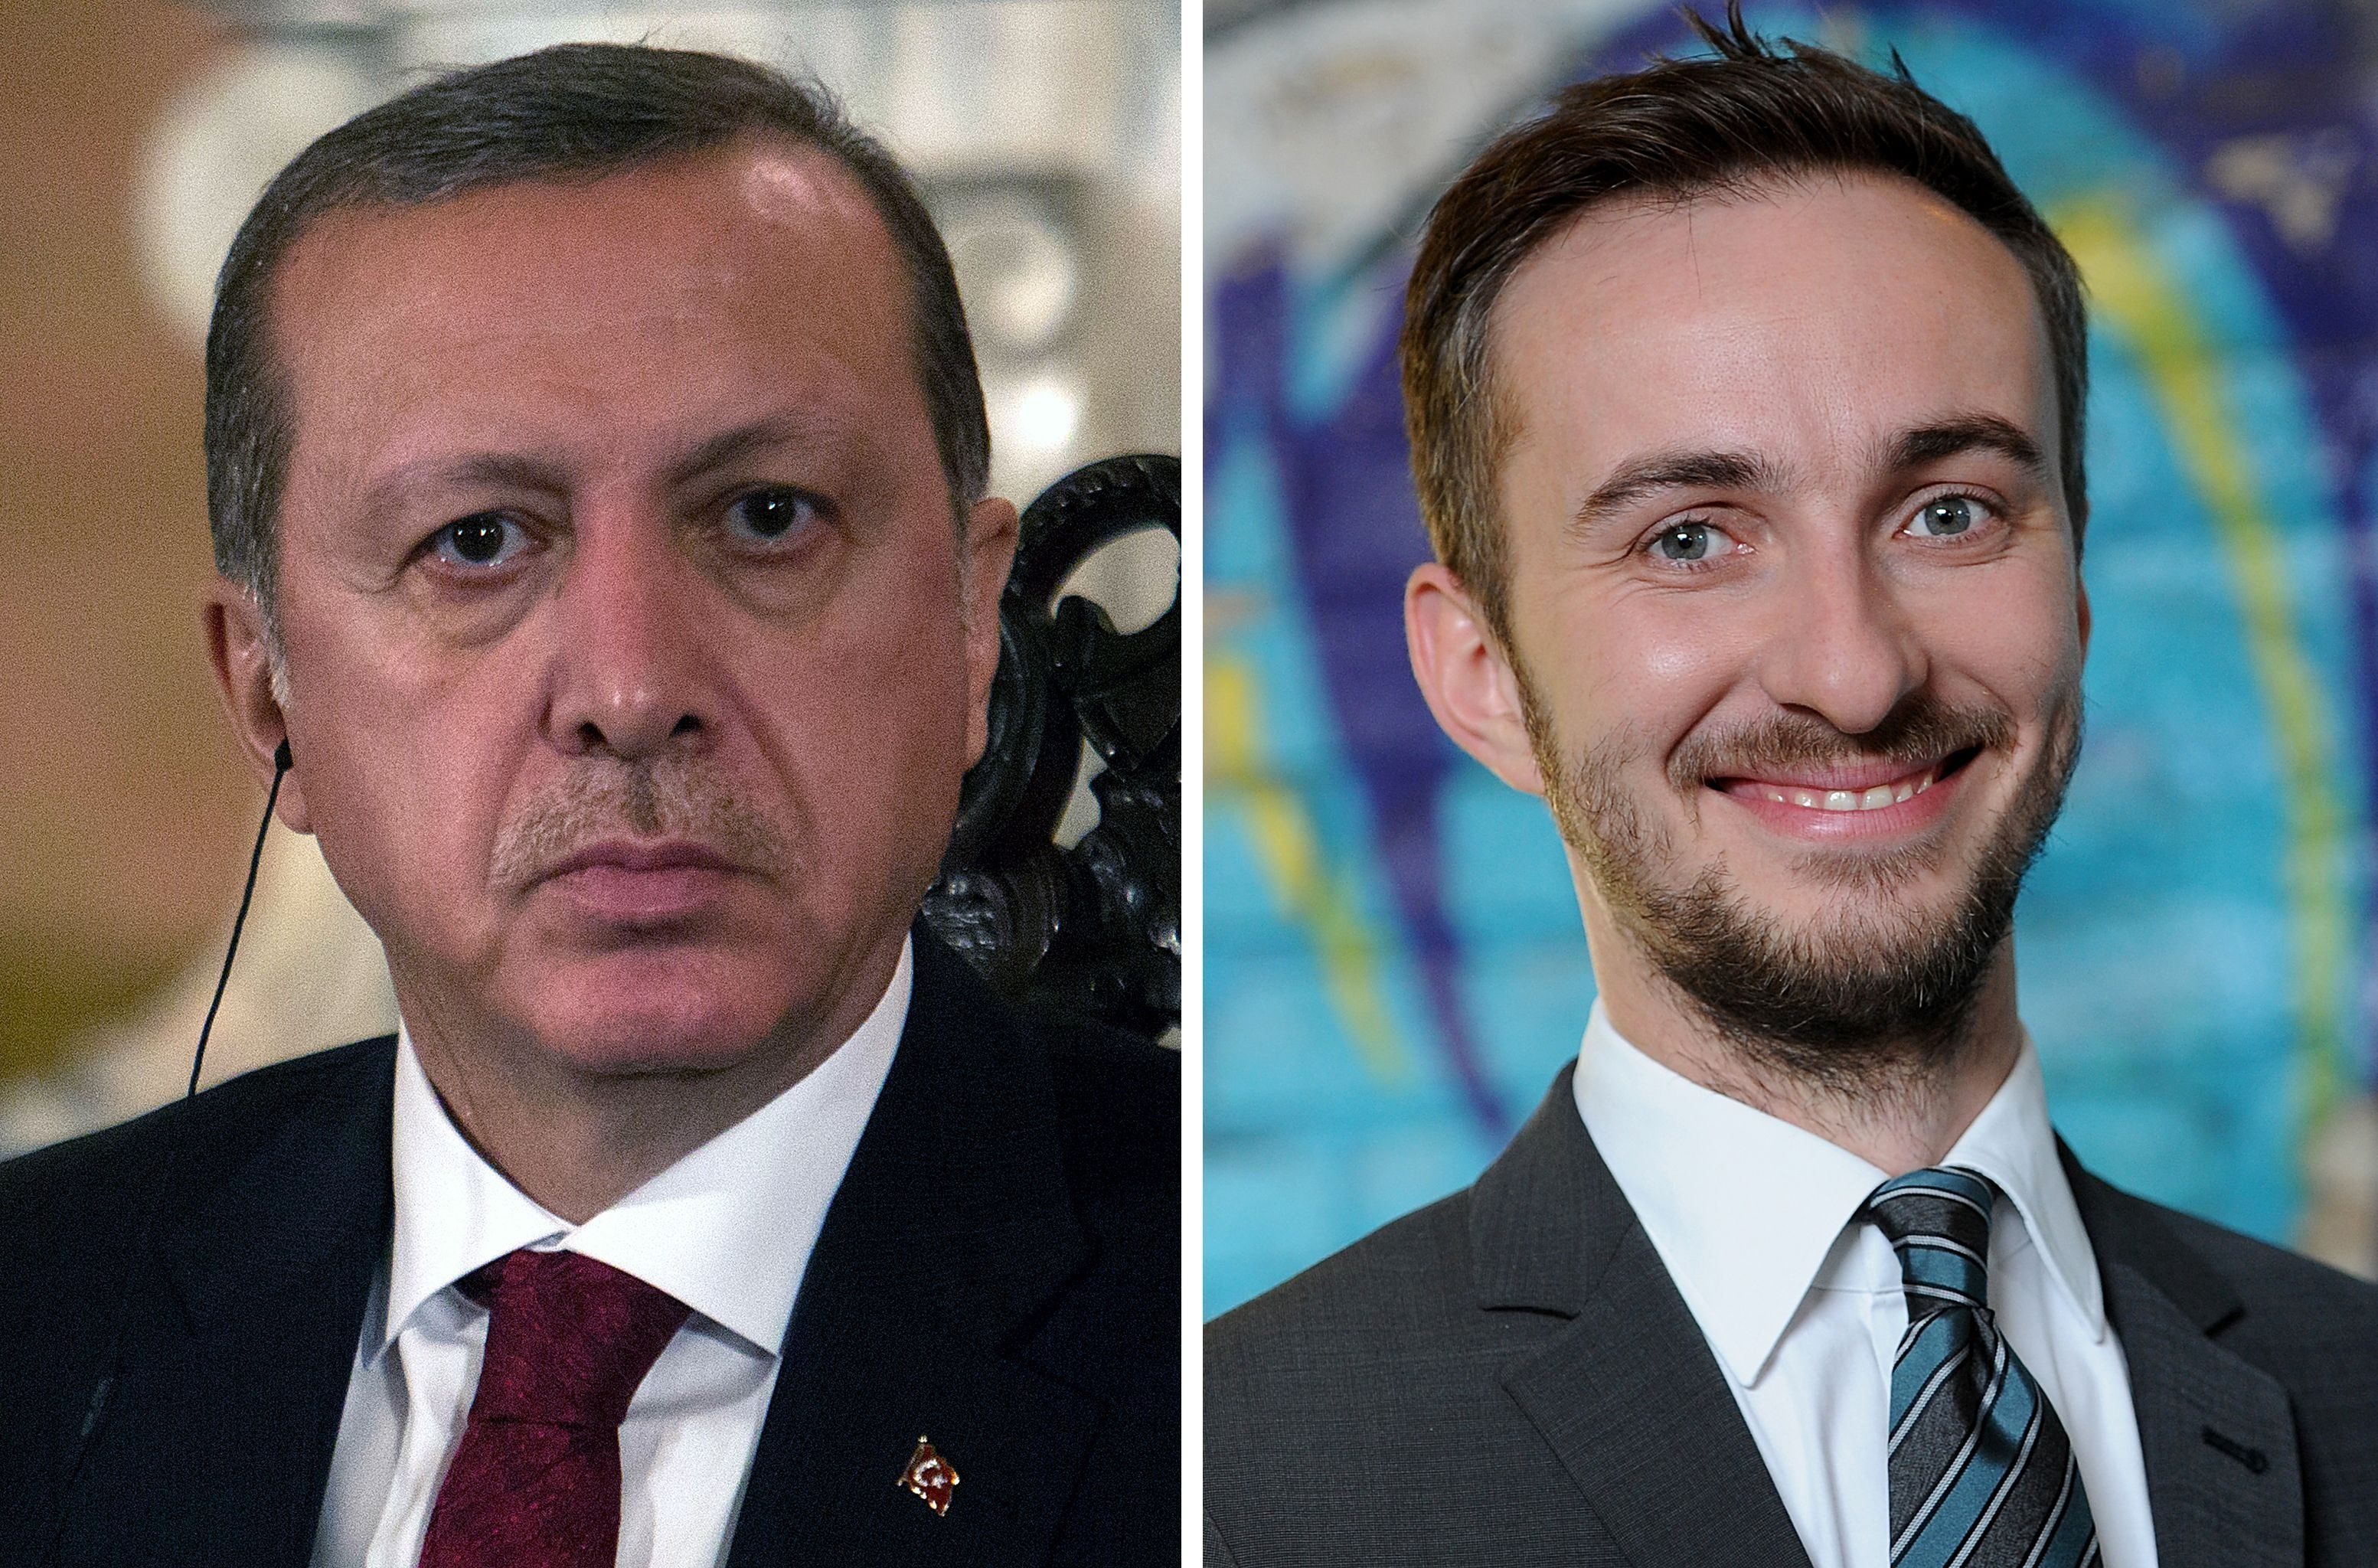 (FILES) This combo made with file pictures shows Turkish President Recep Tayyip Erdogan (L) in Lima on February 2, 2016 and German TV comedian Jan Böhmermann on February 22, 2012 in Berlin.  German Chancellor Angela Merkel on April 15, 2016 authorised a Turkish demand for criminal proceedings against Boehmermann over a crude satirical poem about President Recep Tayyip Erdogan in a bitter row over free speech. / AFP / dpa AND AFP / Britta PEDERSEN AND SEBASTIAN CASTAÑEDA / Germany OUT        (Photo credit should read BRITTA PEDERSEN,SEBASTIAN CASTANEDA/AFP/Getty Images)